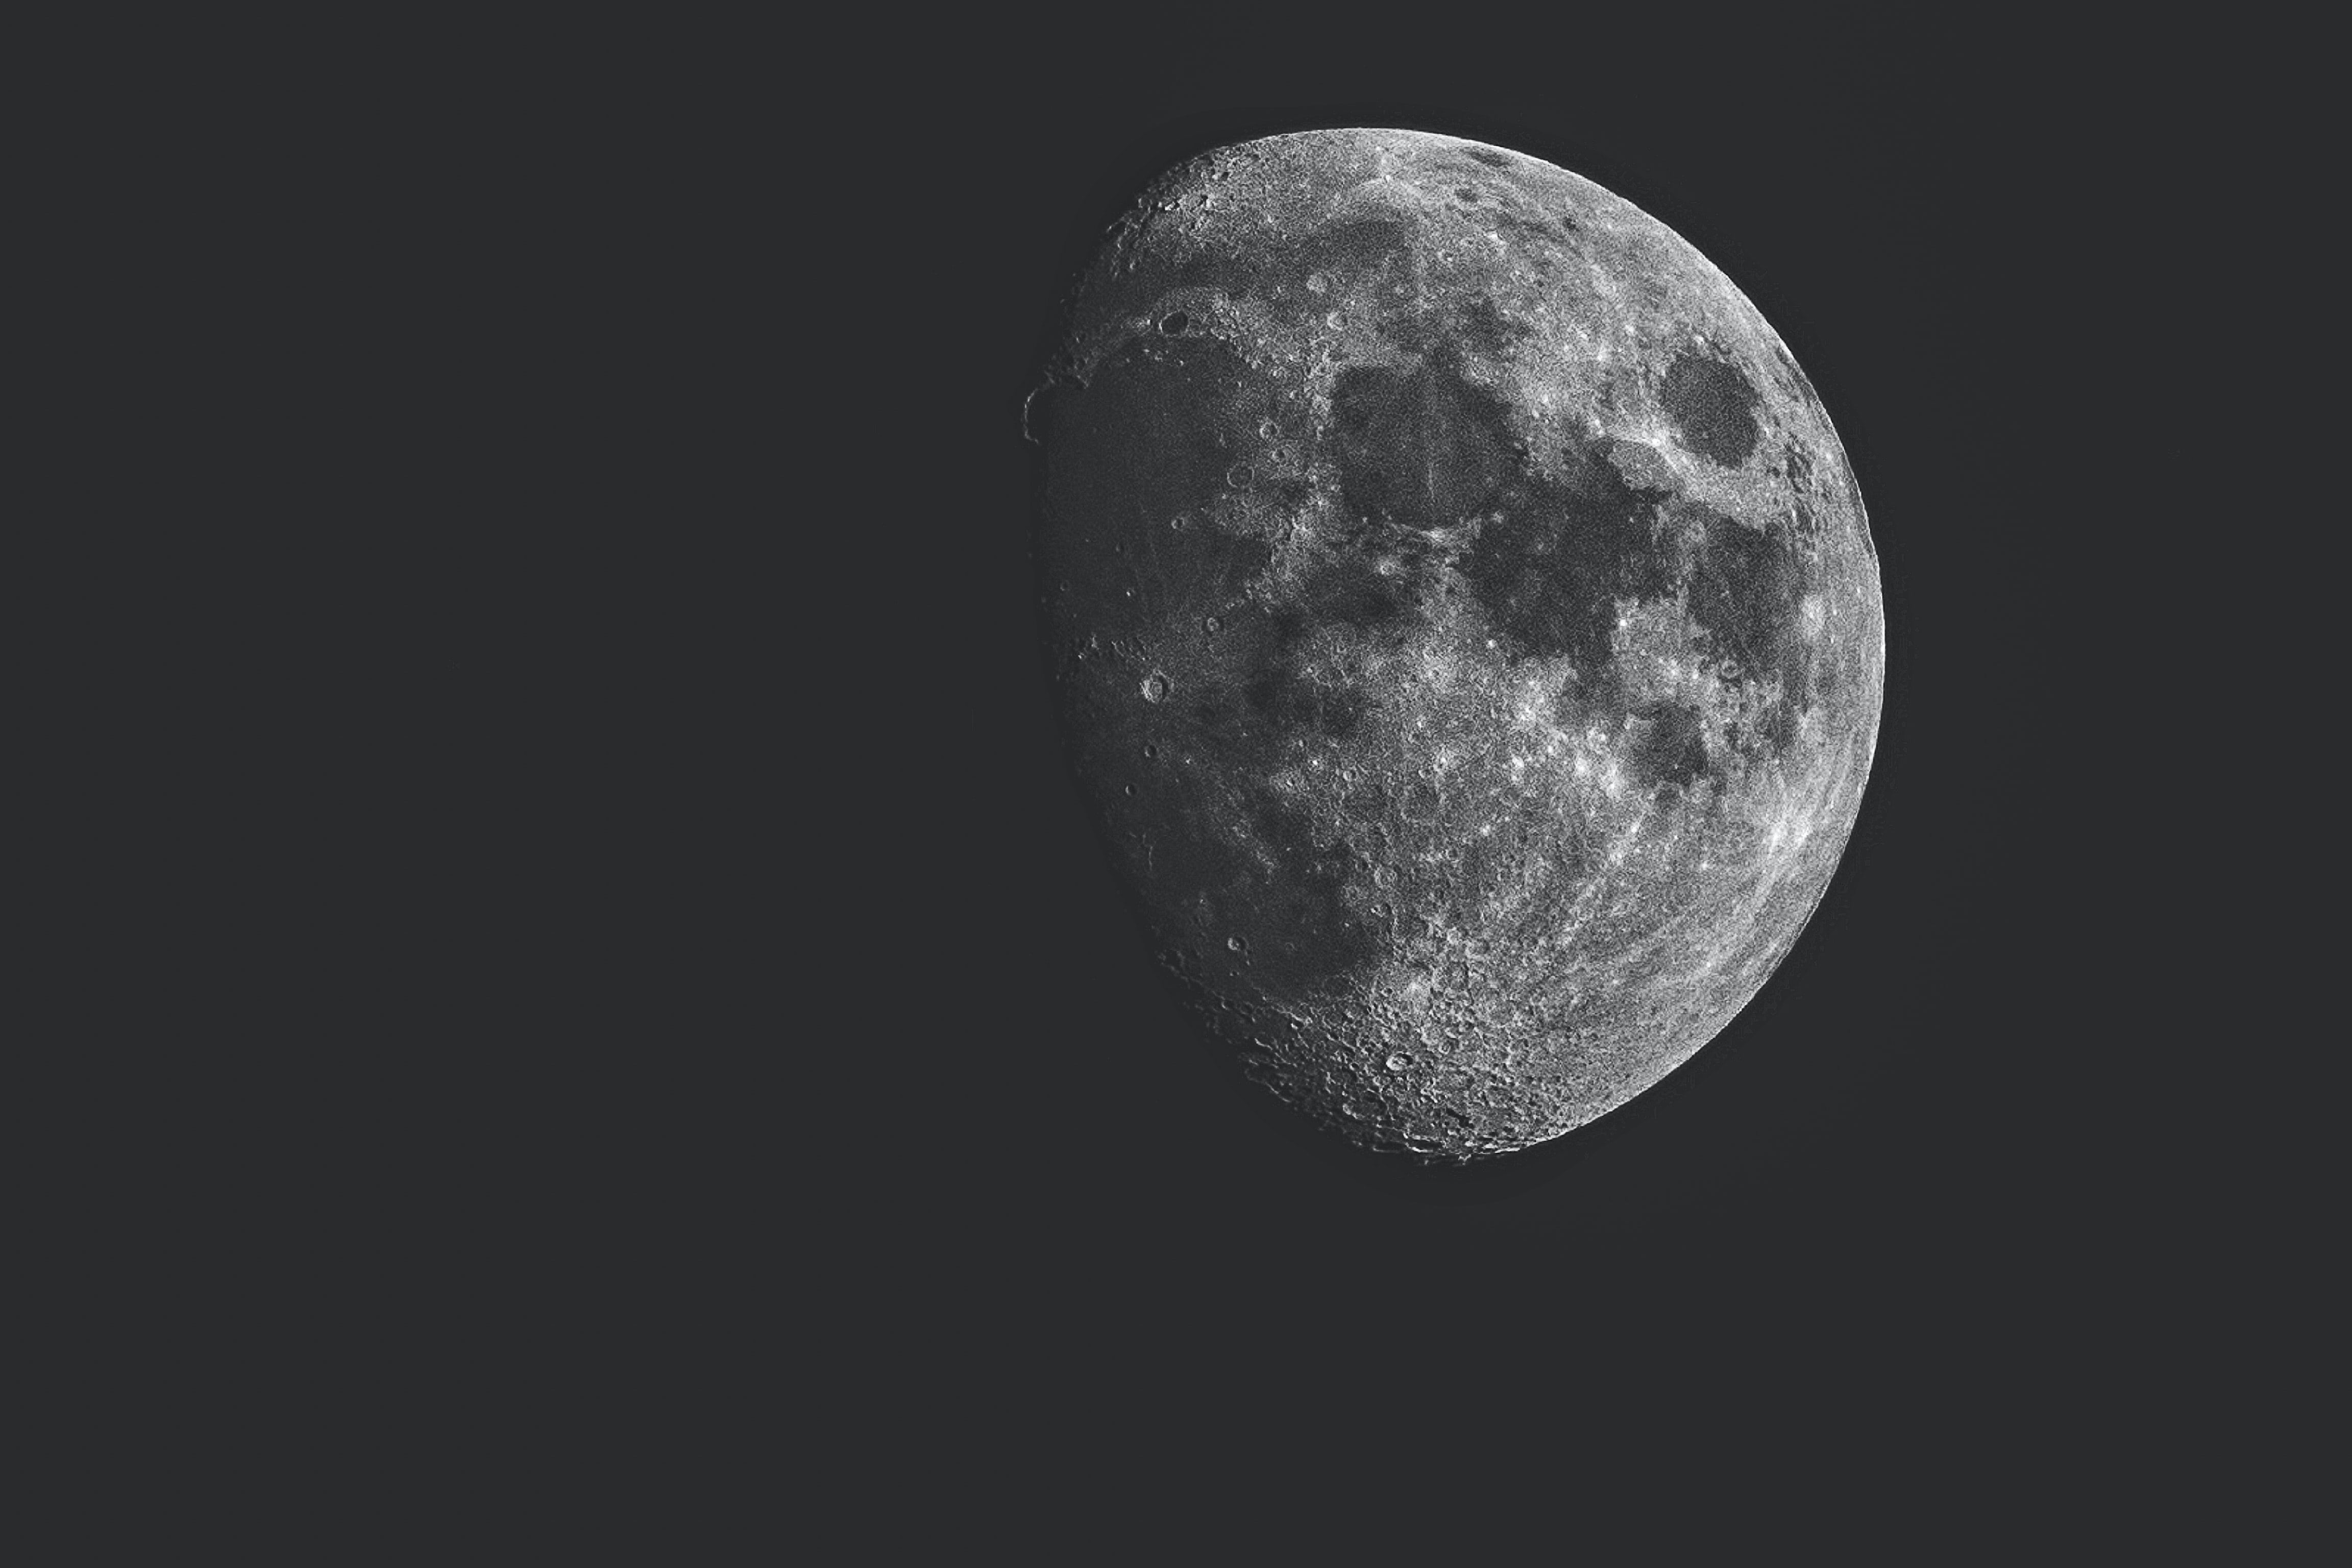 The moon, partially in shadow